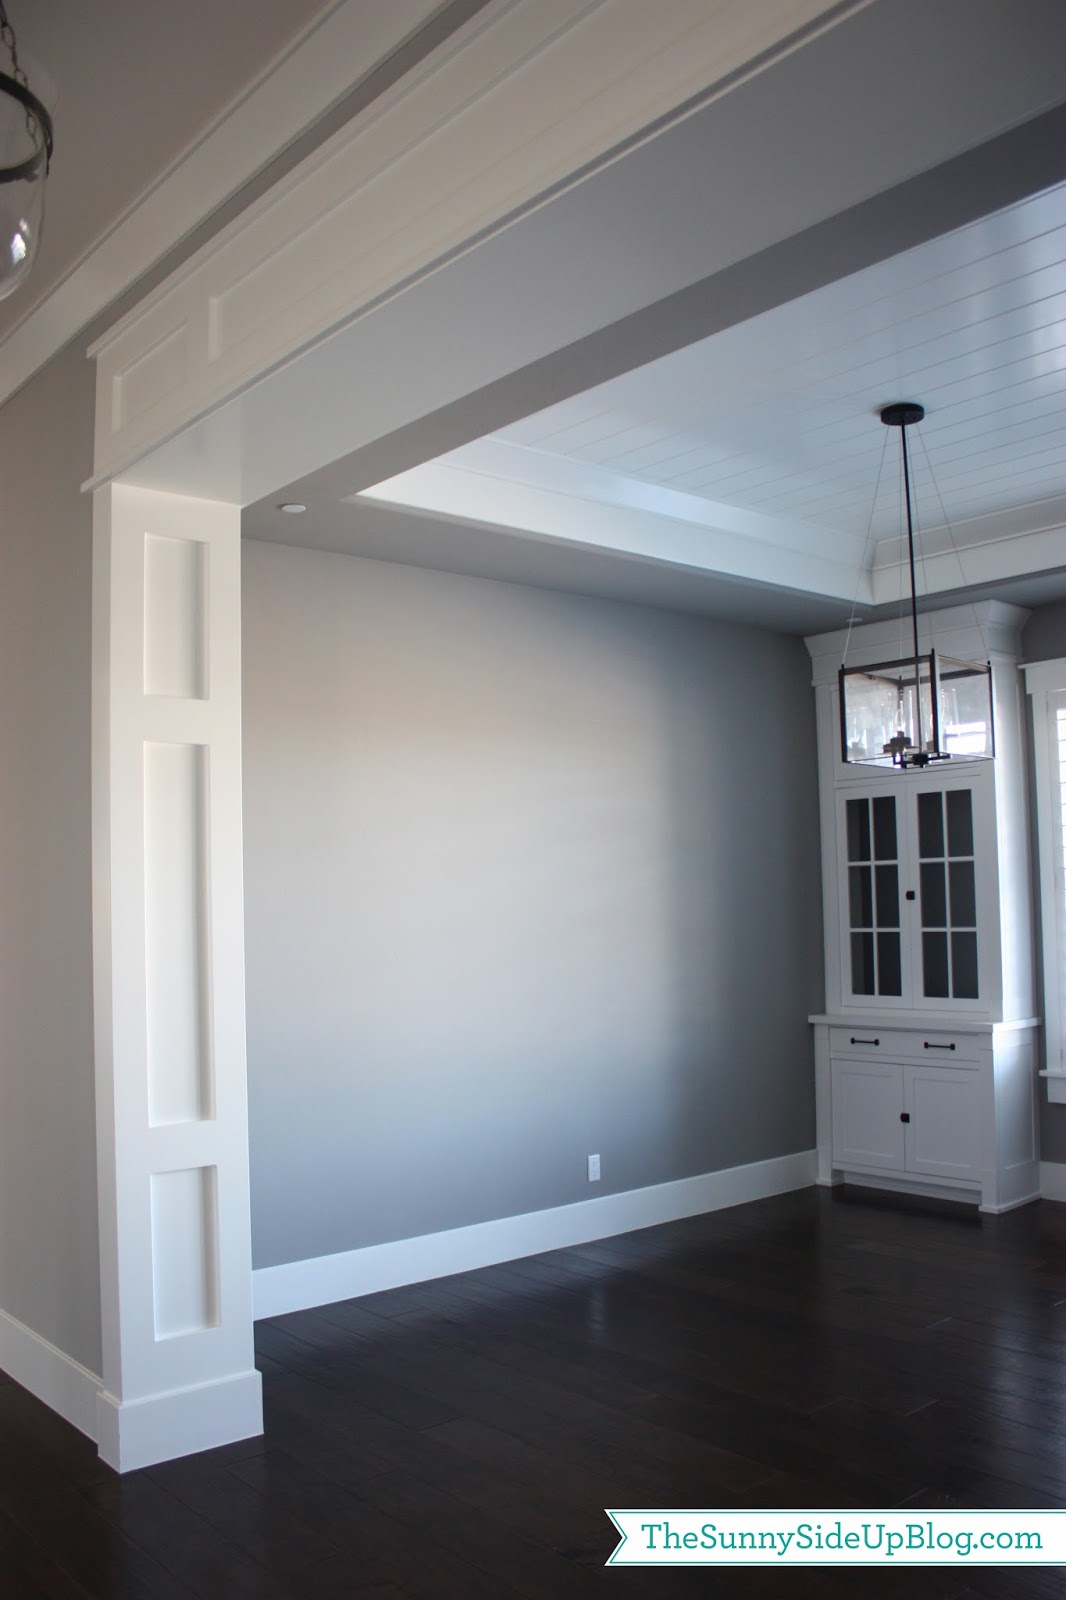 Formal dining room the sunny side up blog for Interior moulding and trim